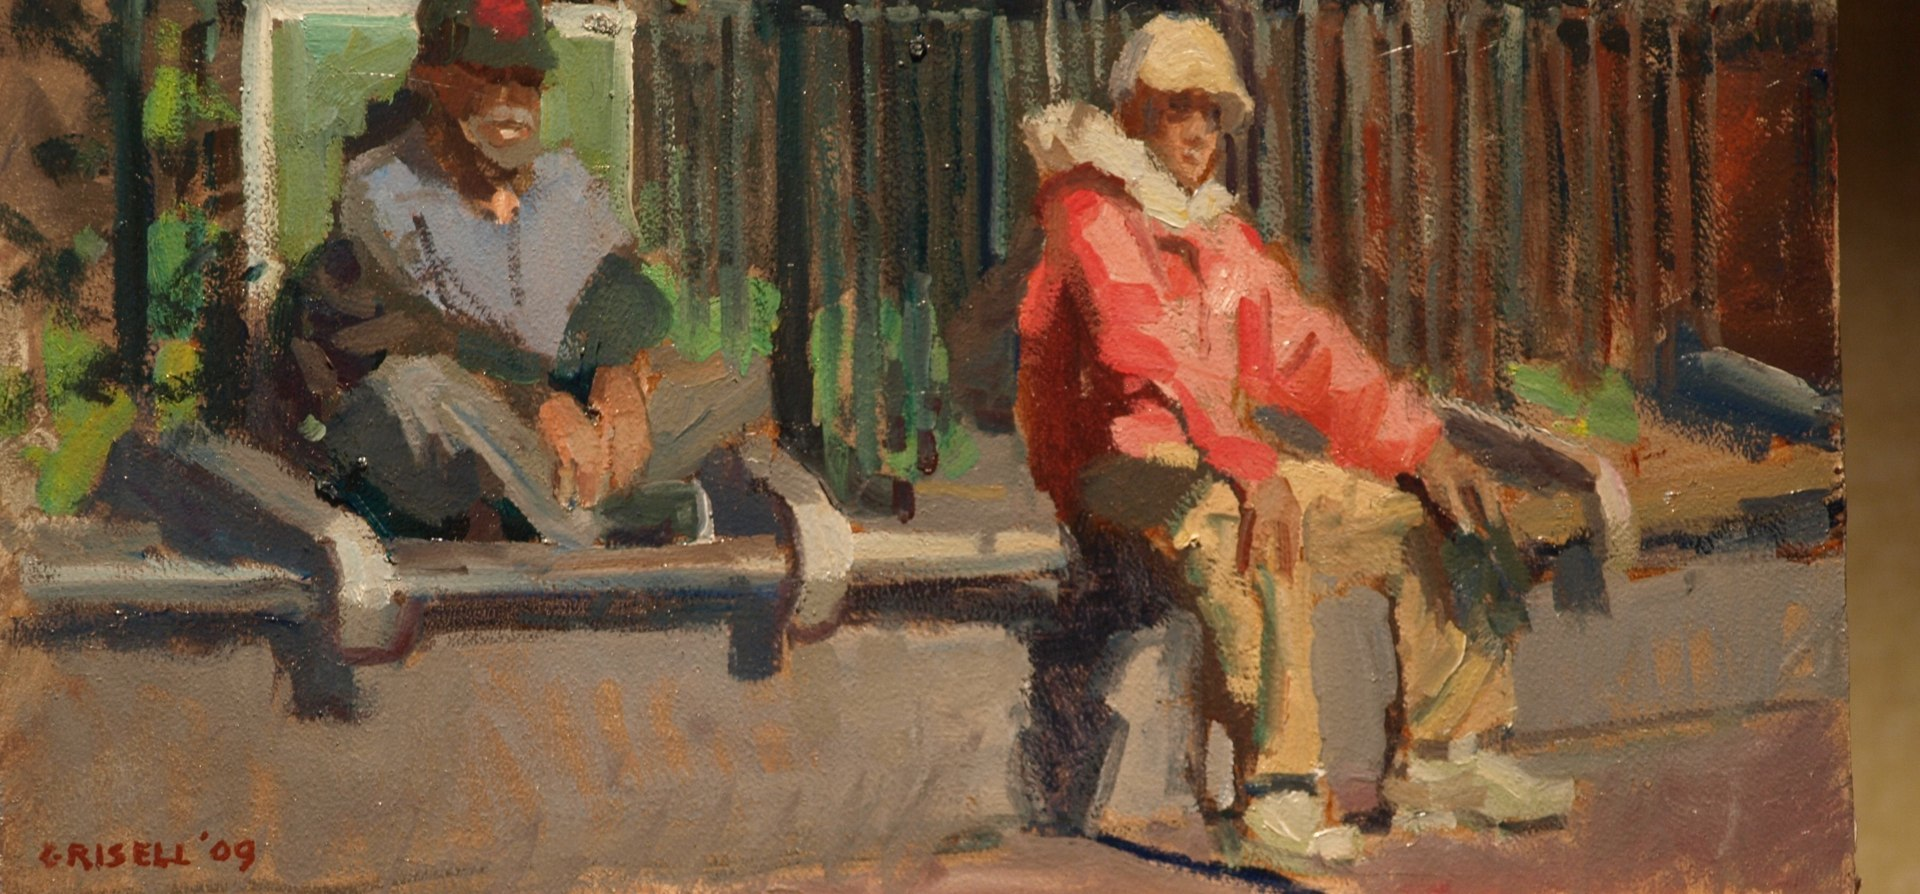 Bench Sitters - Washington Square, Oil on Panel, 9 x 16 Inches, by Susan Grisell, $325